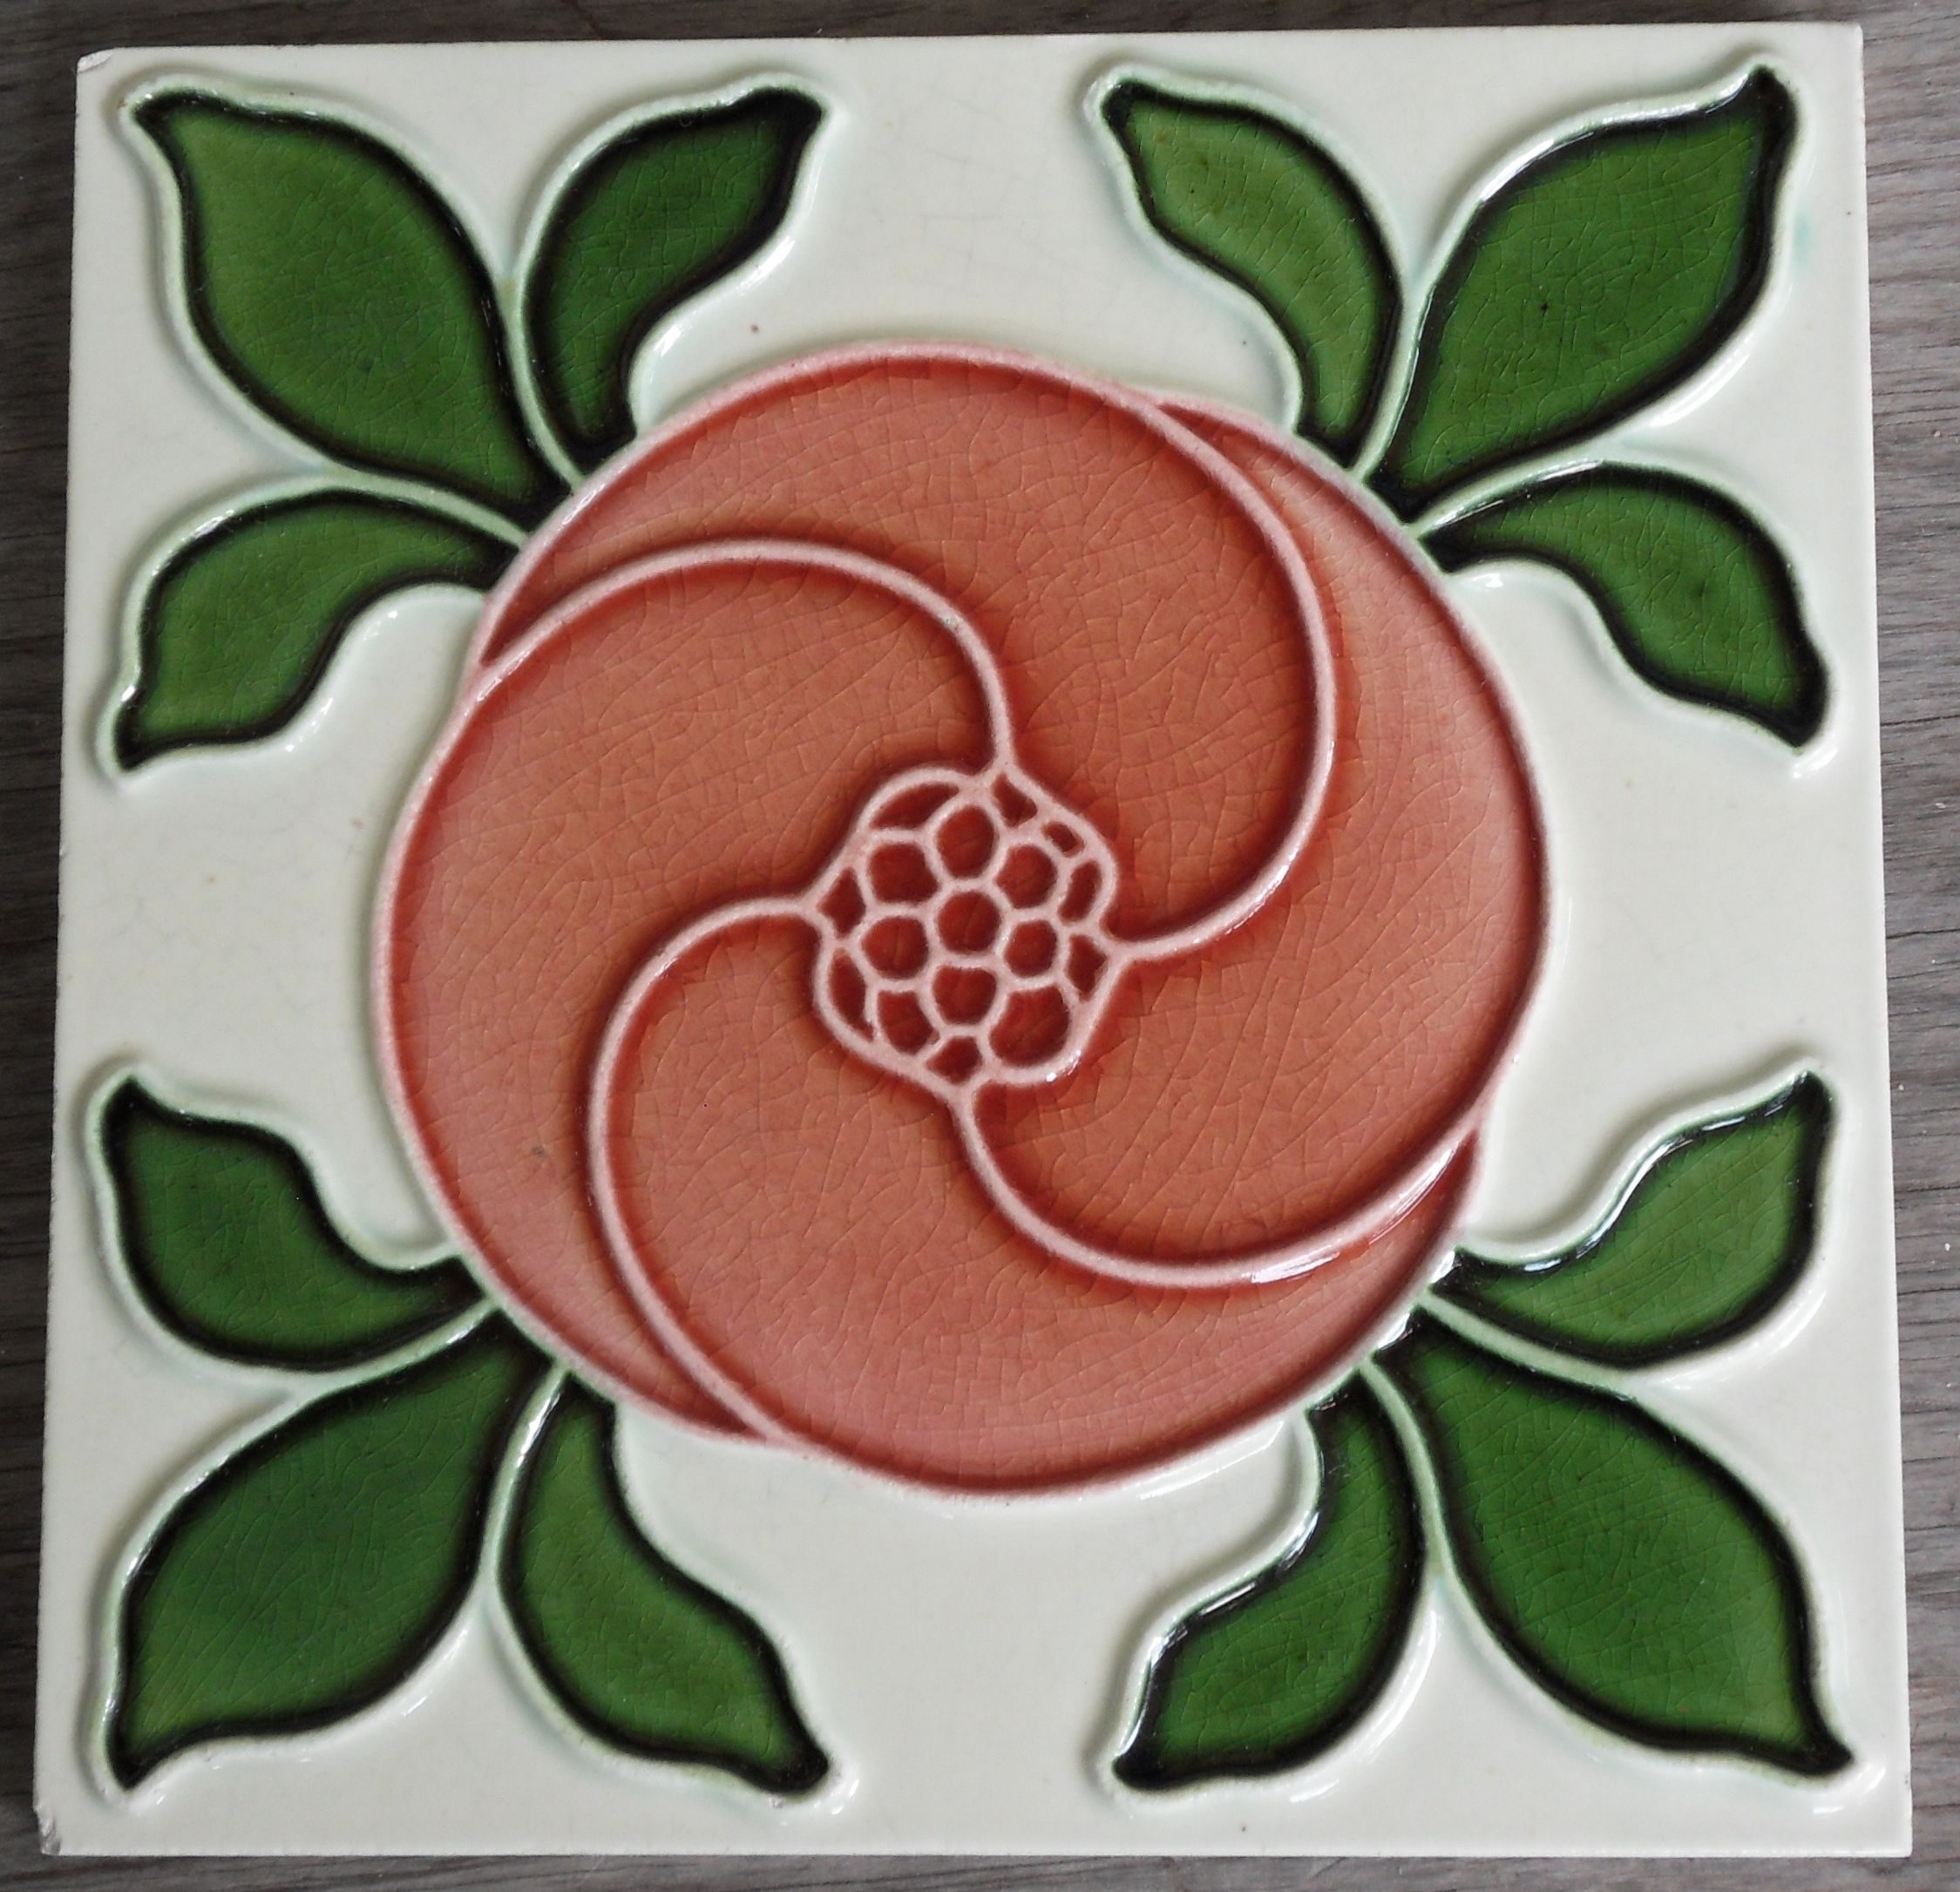 Fills the tile with organic content a super relief moulded design from Maws c1906